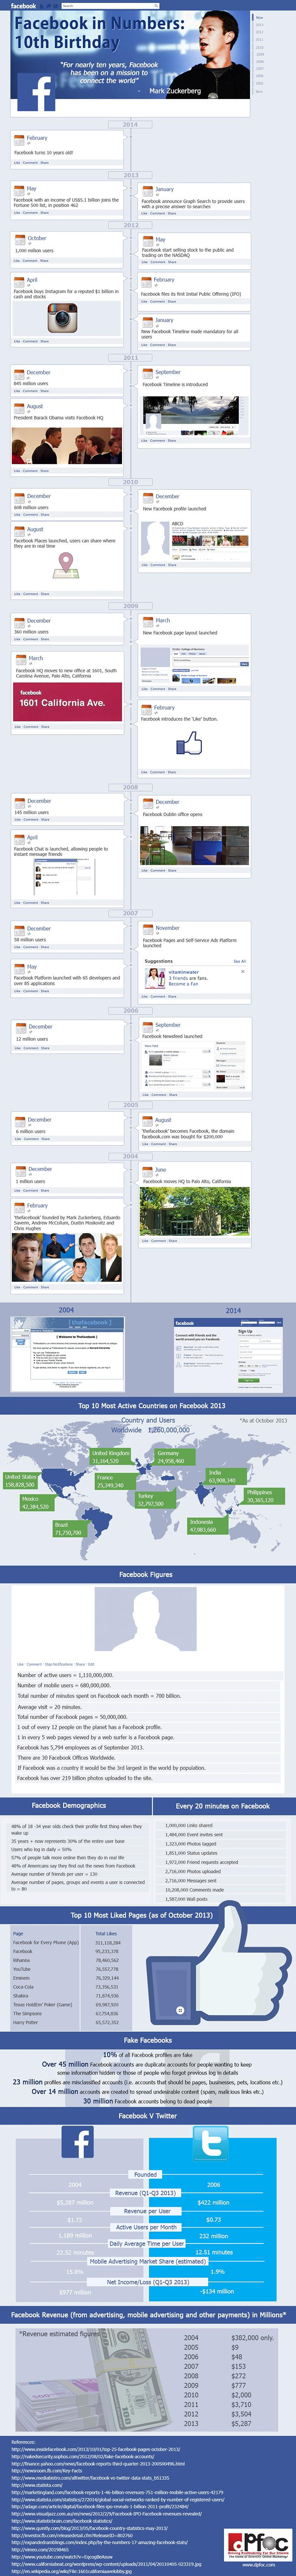 Facebook-Celebrate-10-years-Infographic